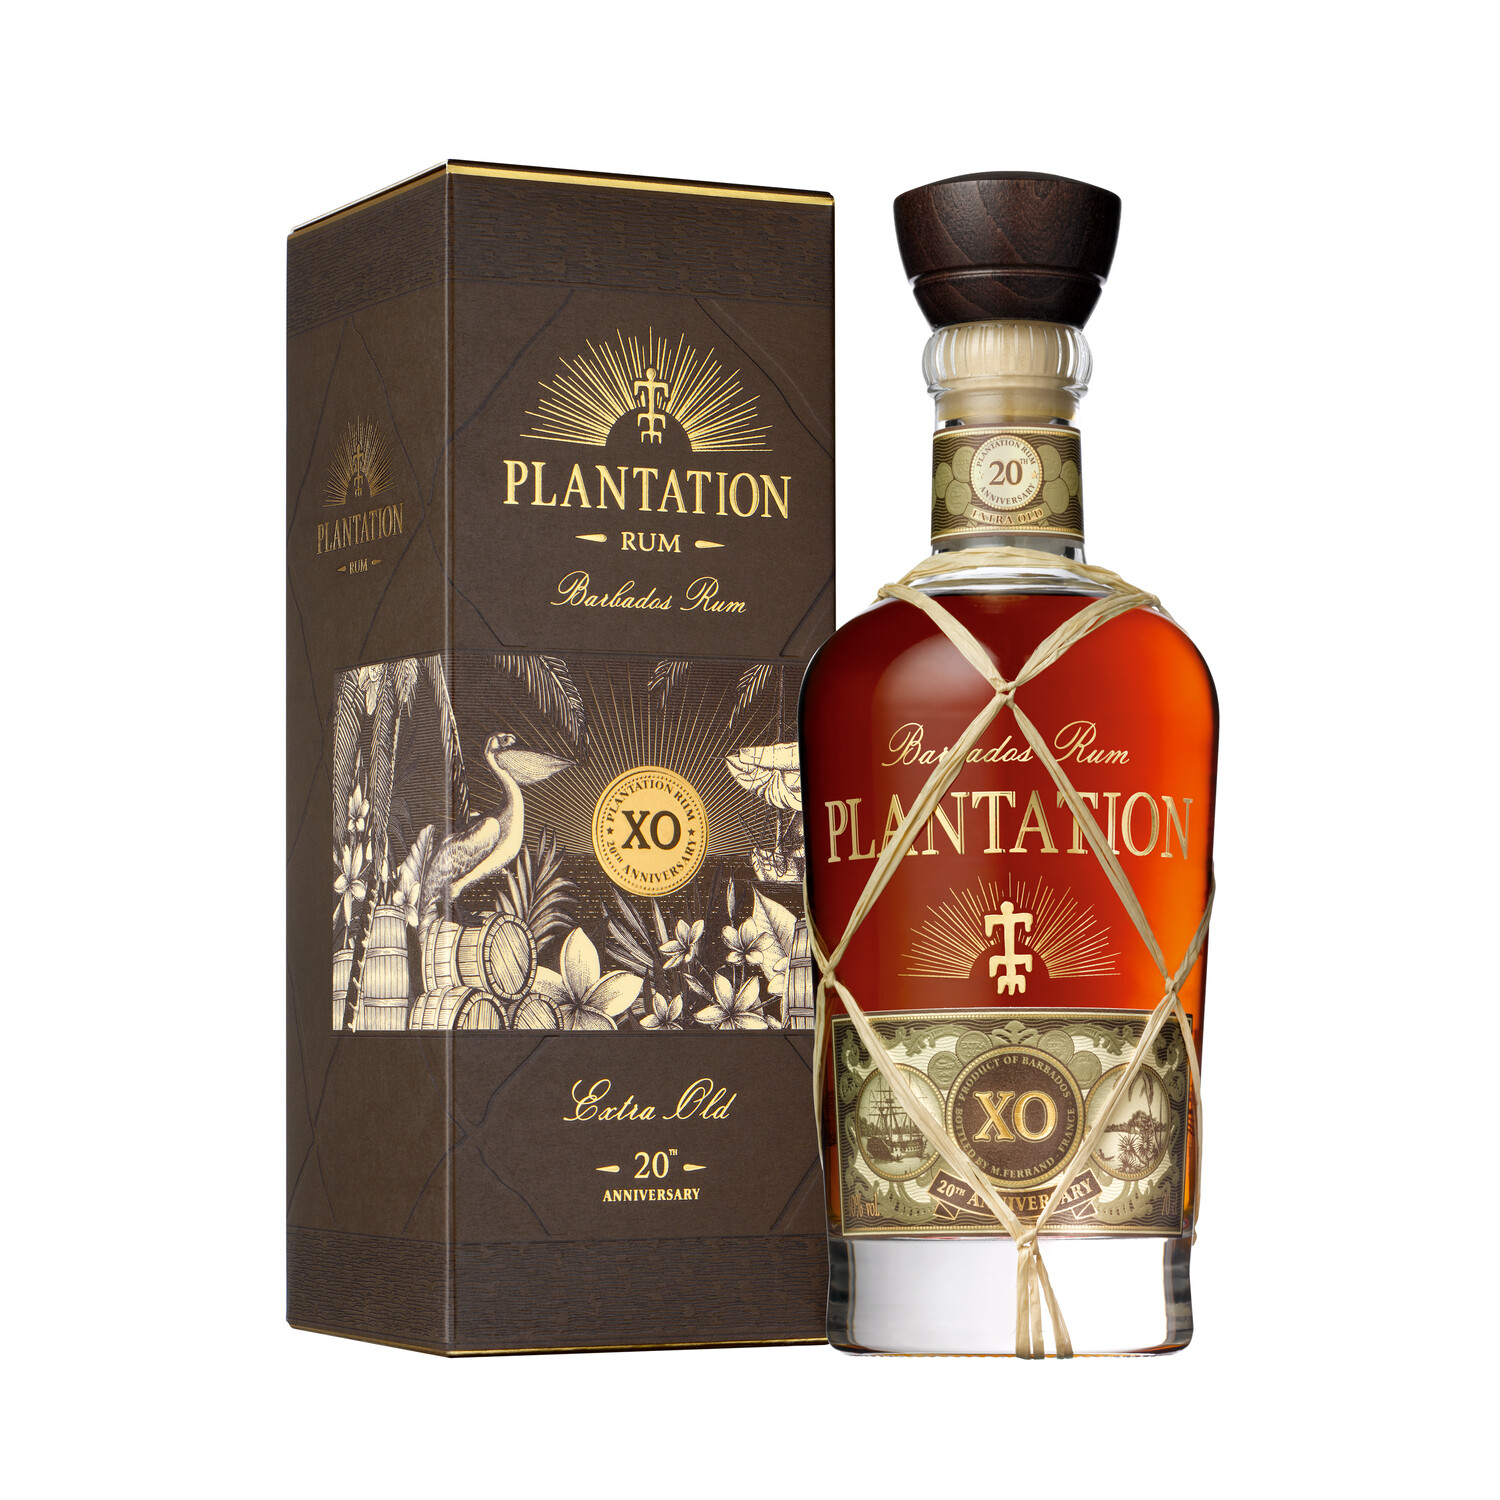 PLANTATION RUM, Guatemala XO, Single Cask Collection